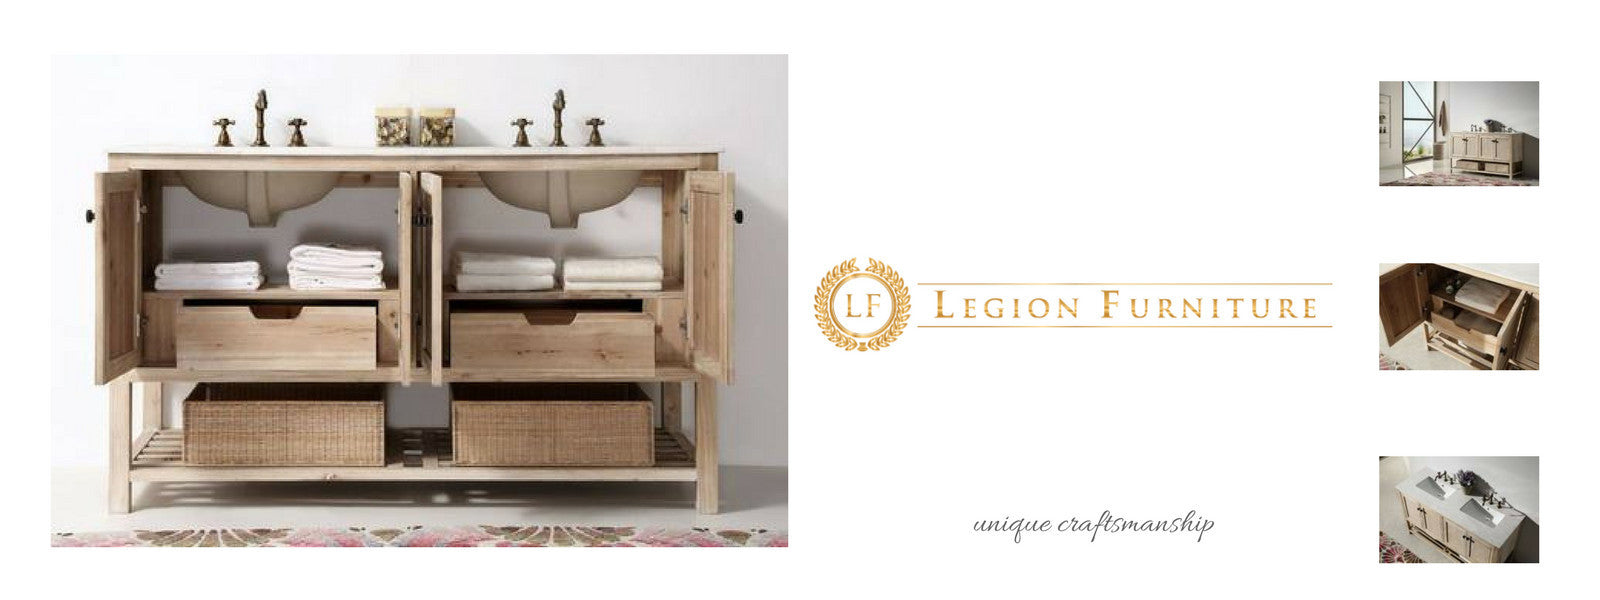 Legion Furniture Bathroom Bathtubs and Vanities